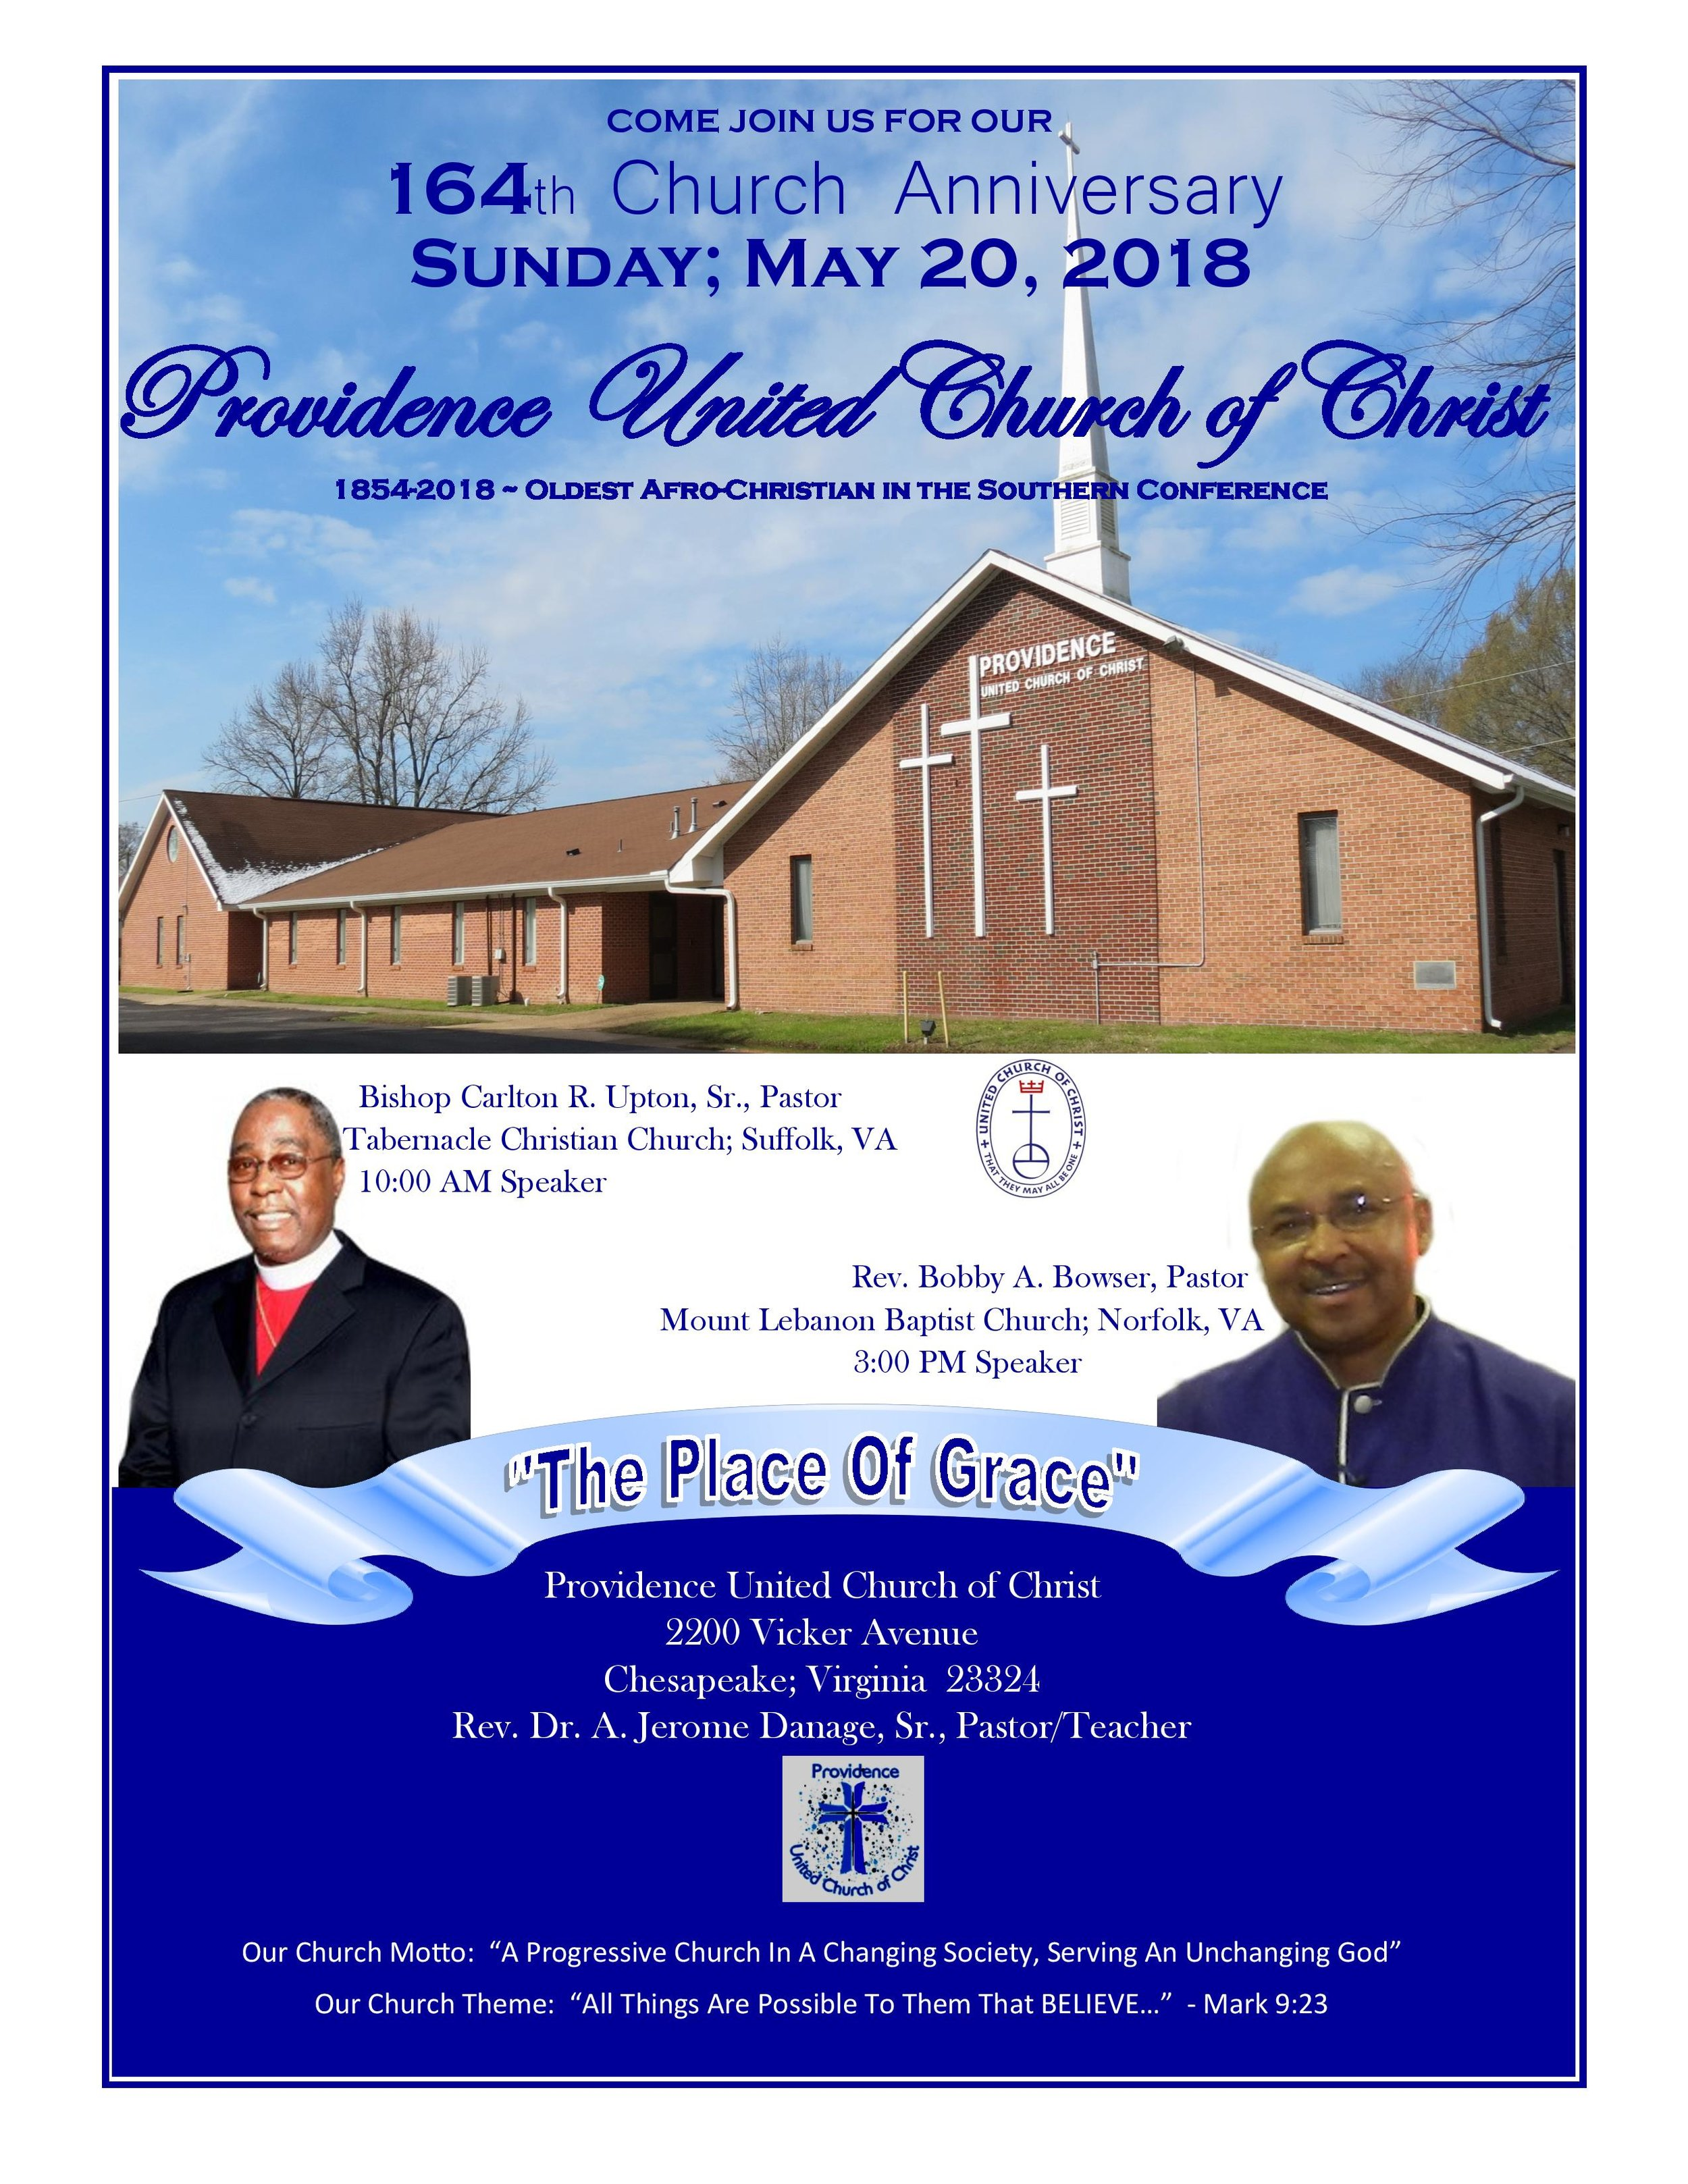 Providence UCC 164th anniversary flyer-page-001.jpg